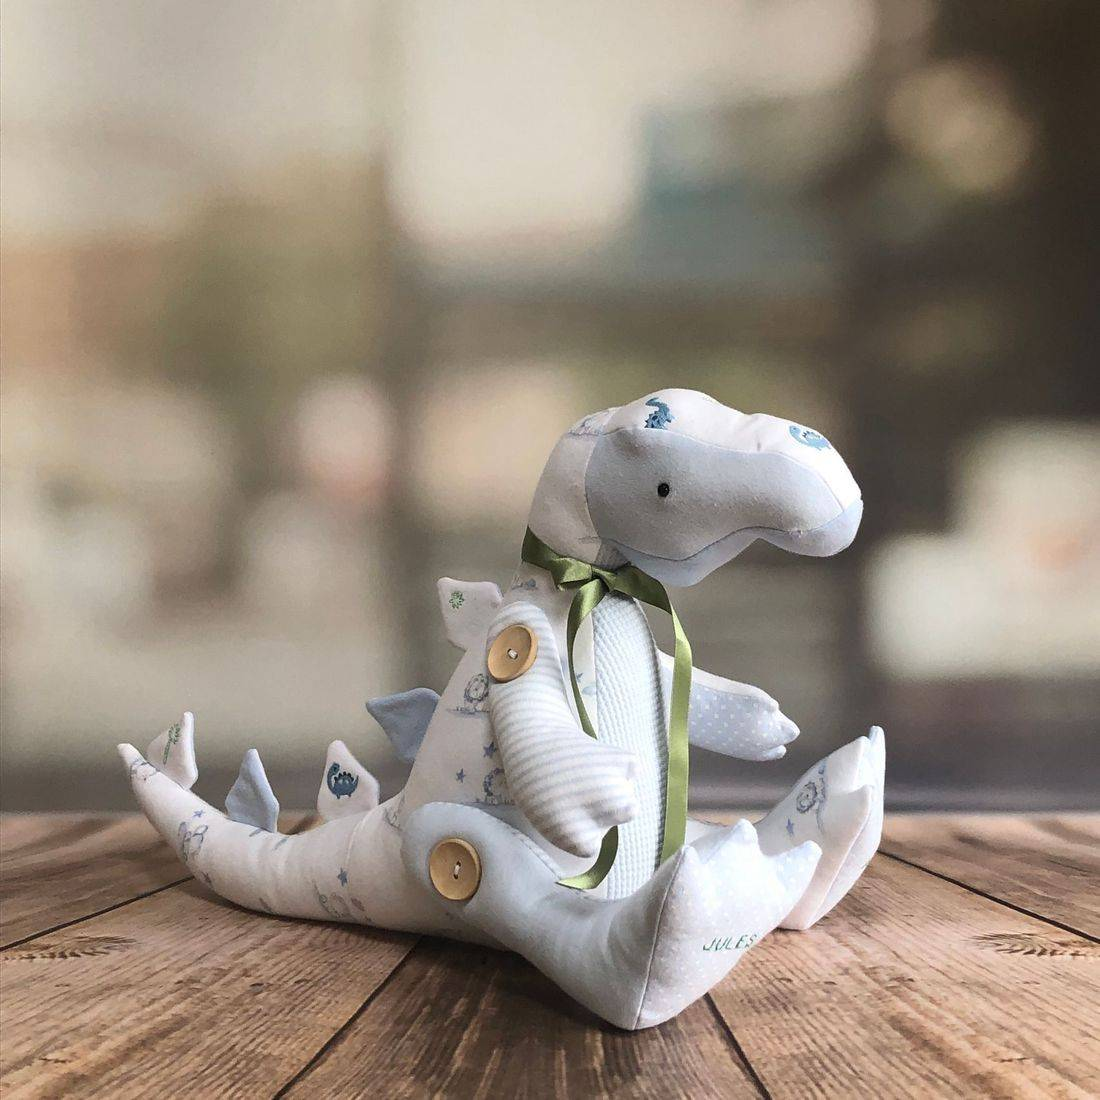 Dinosaur Keepsake made from sentimental clothing